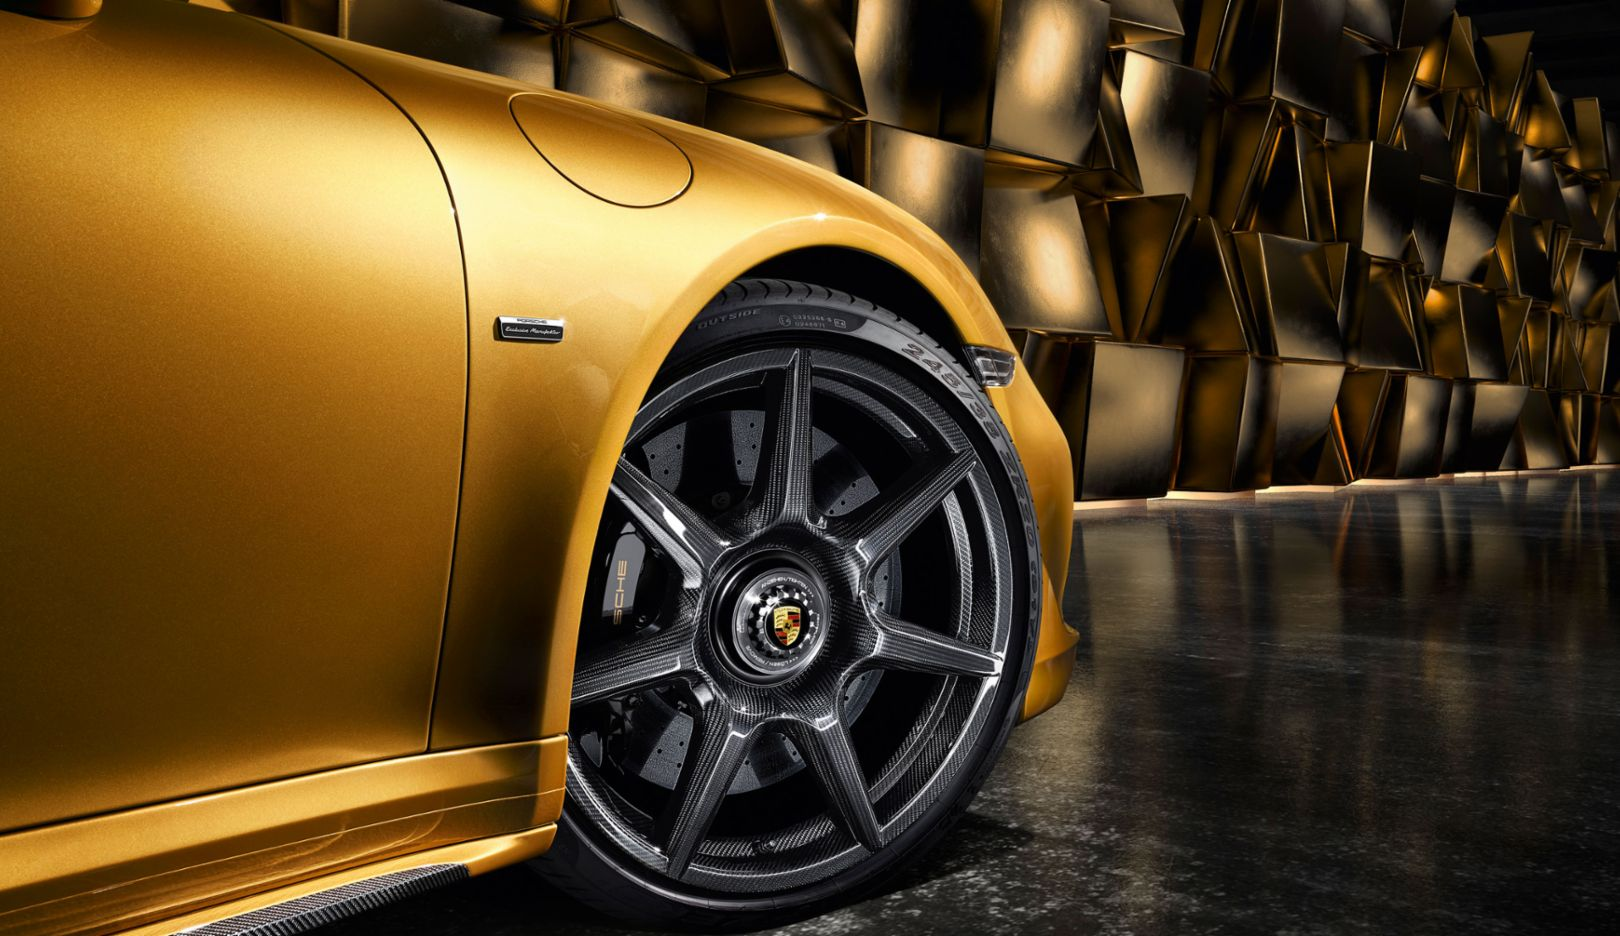 Porsche 20-inch 911 Turbo Carbon Wheel, 911 Turbo S Exclusive Series, 2017, Porsche AG